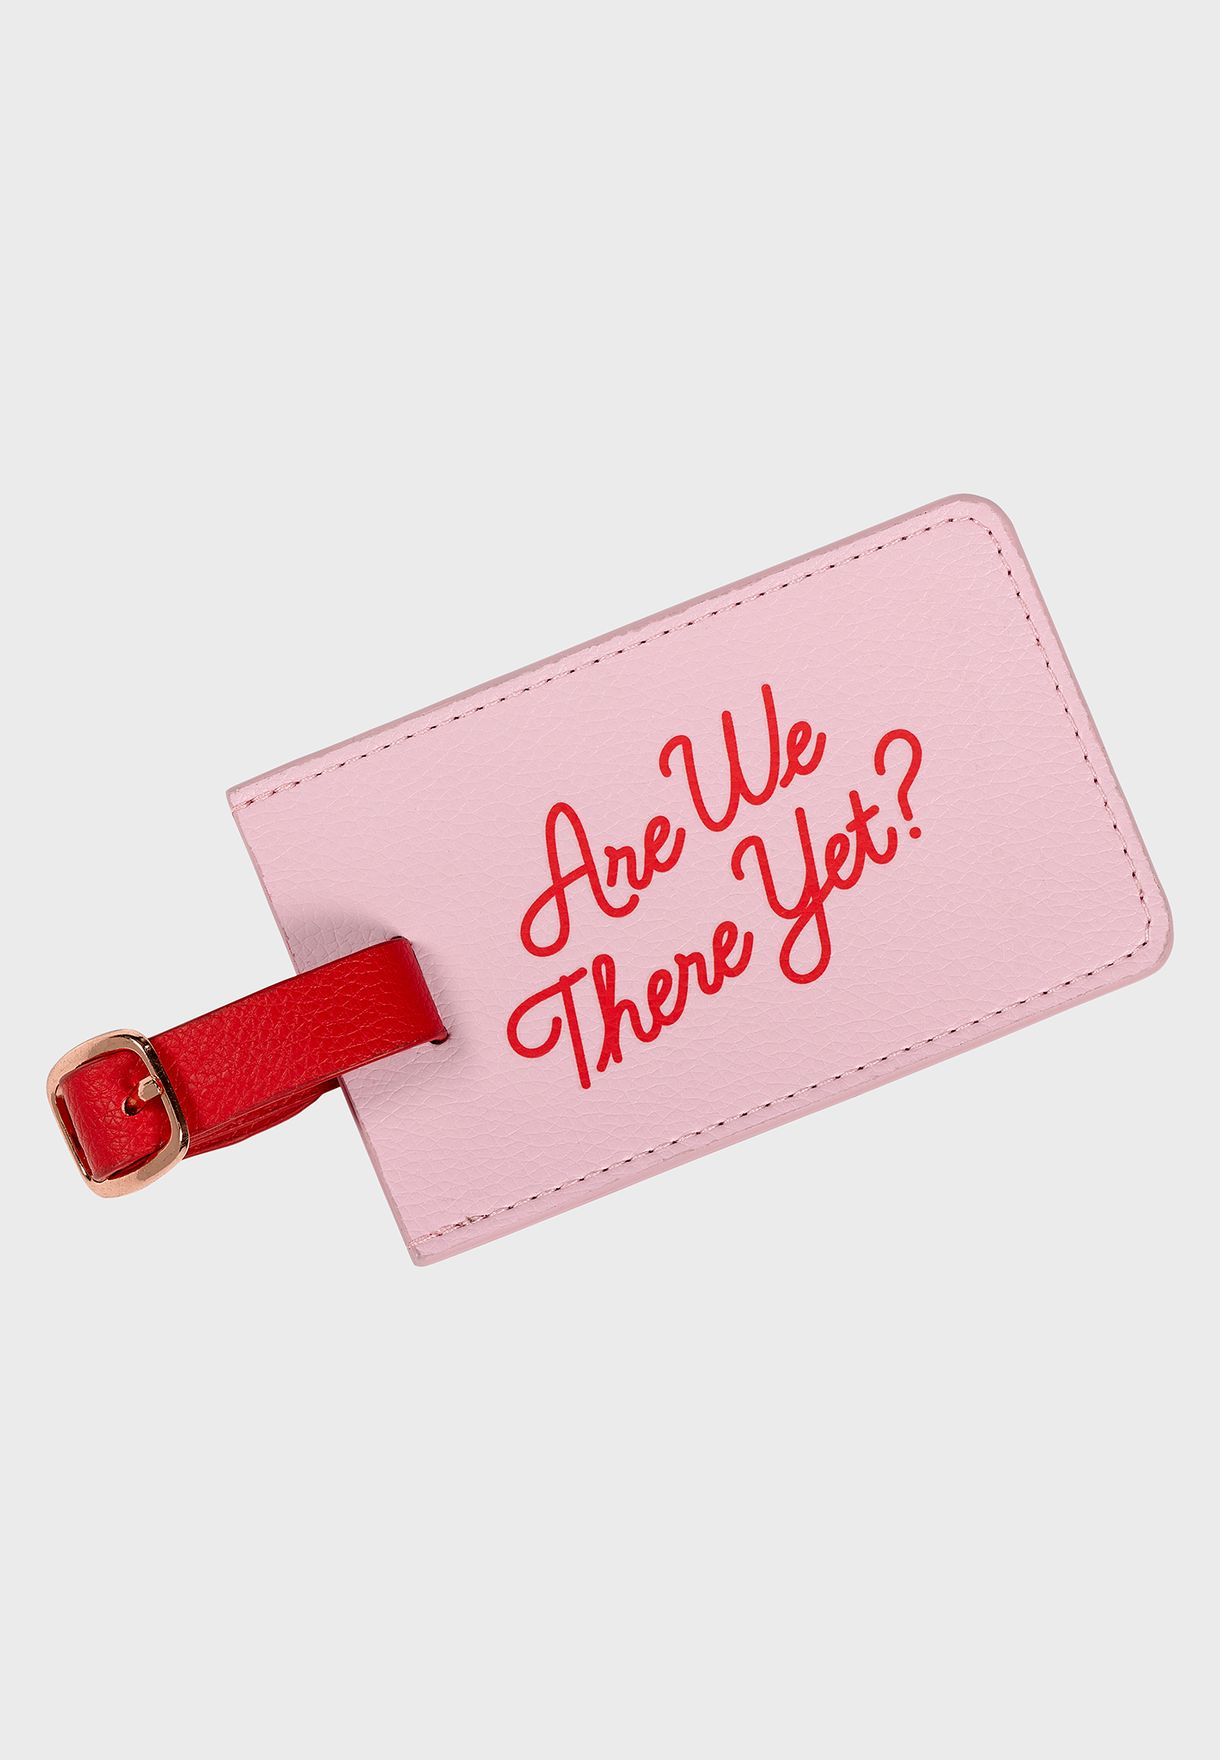 Luggage Tag - Are We There Yet?